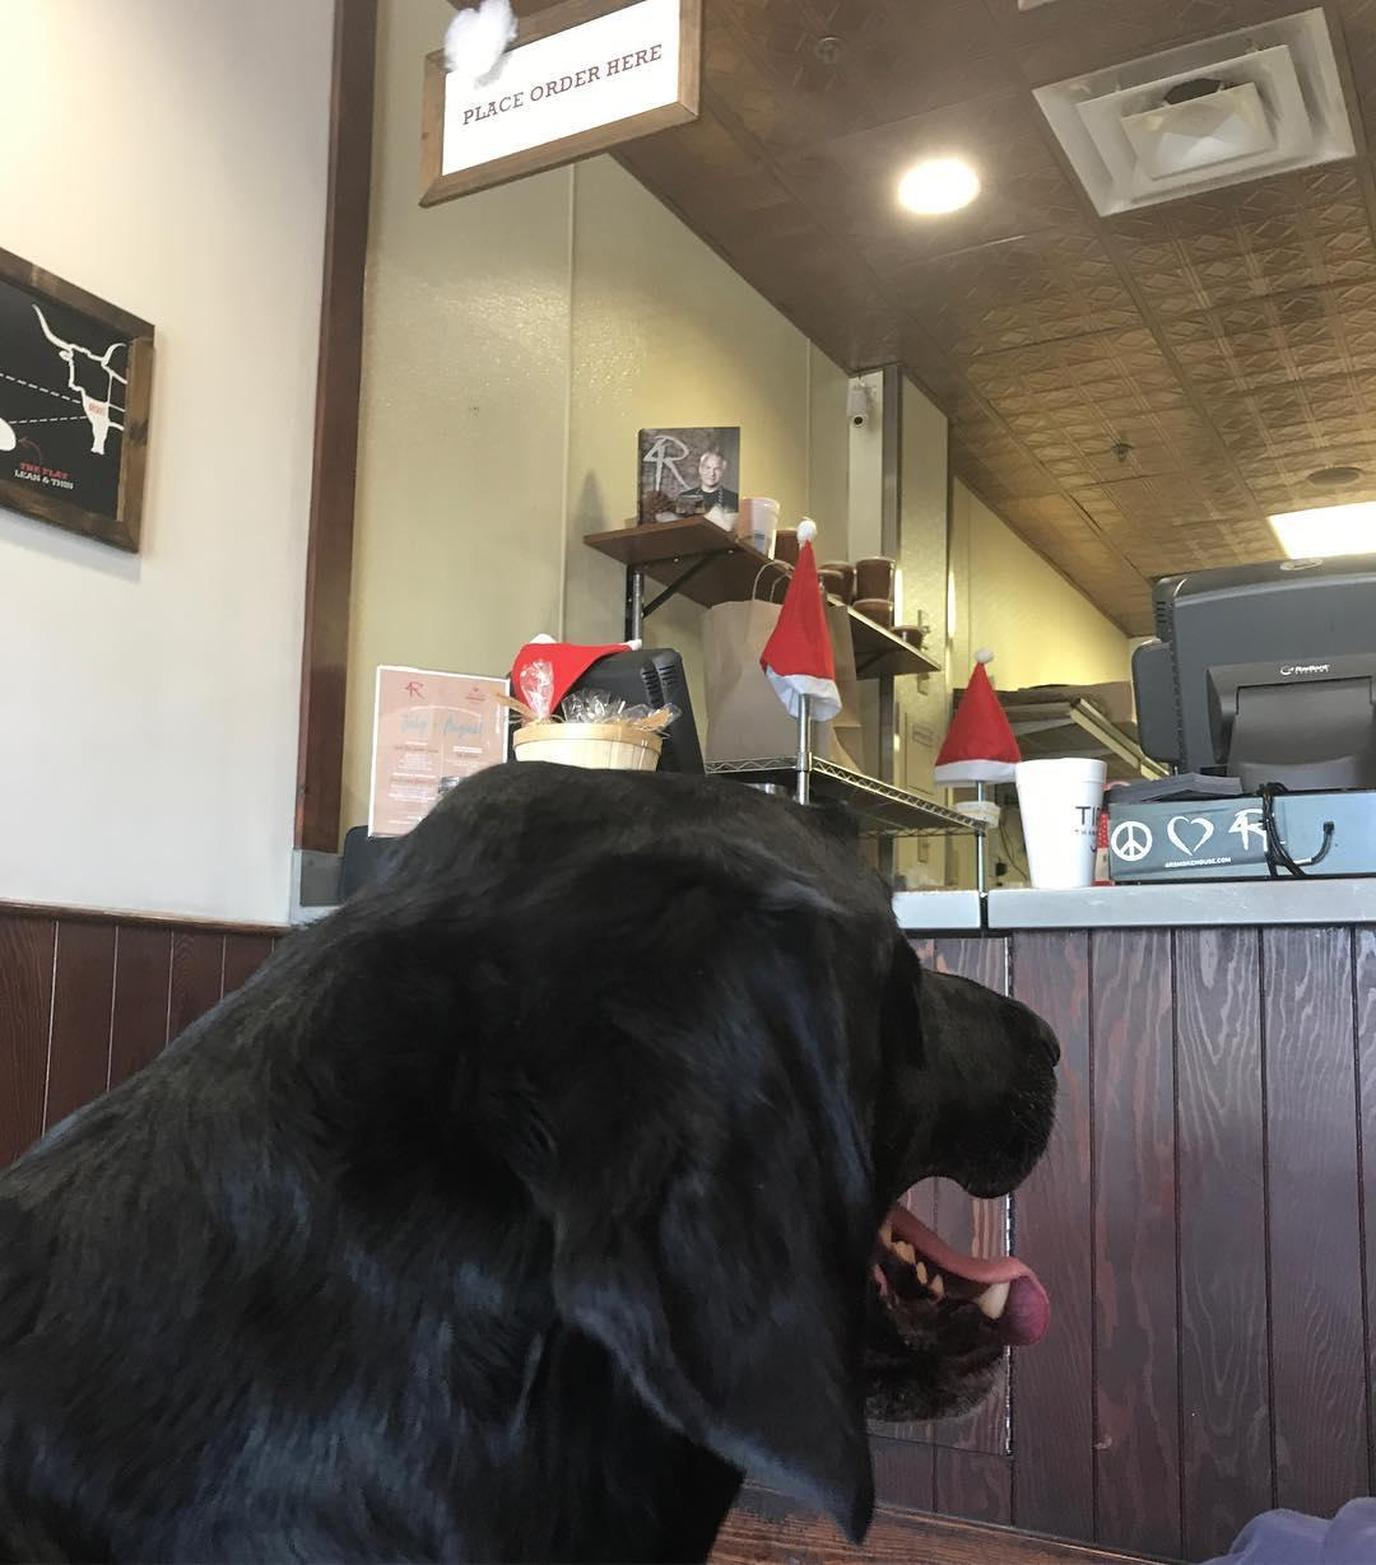 A Labrador Stands at the Register at a Pet-Friendly Barbecue Restaurant in Winter Park.